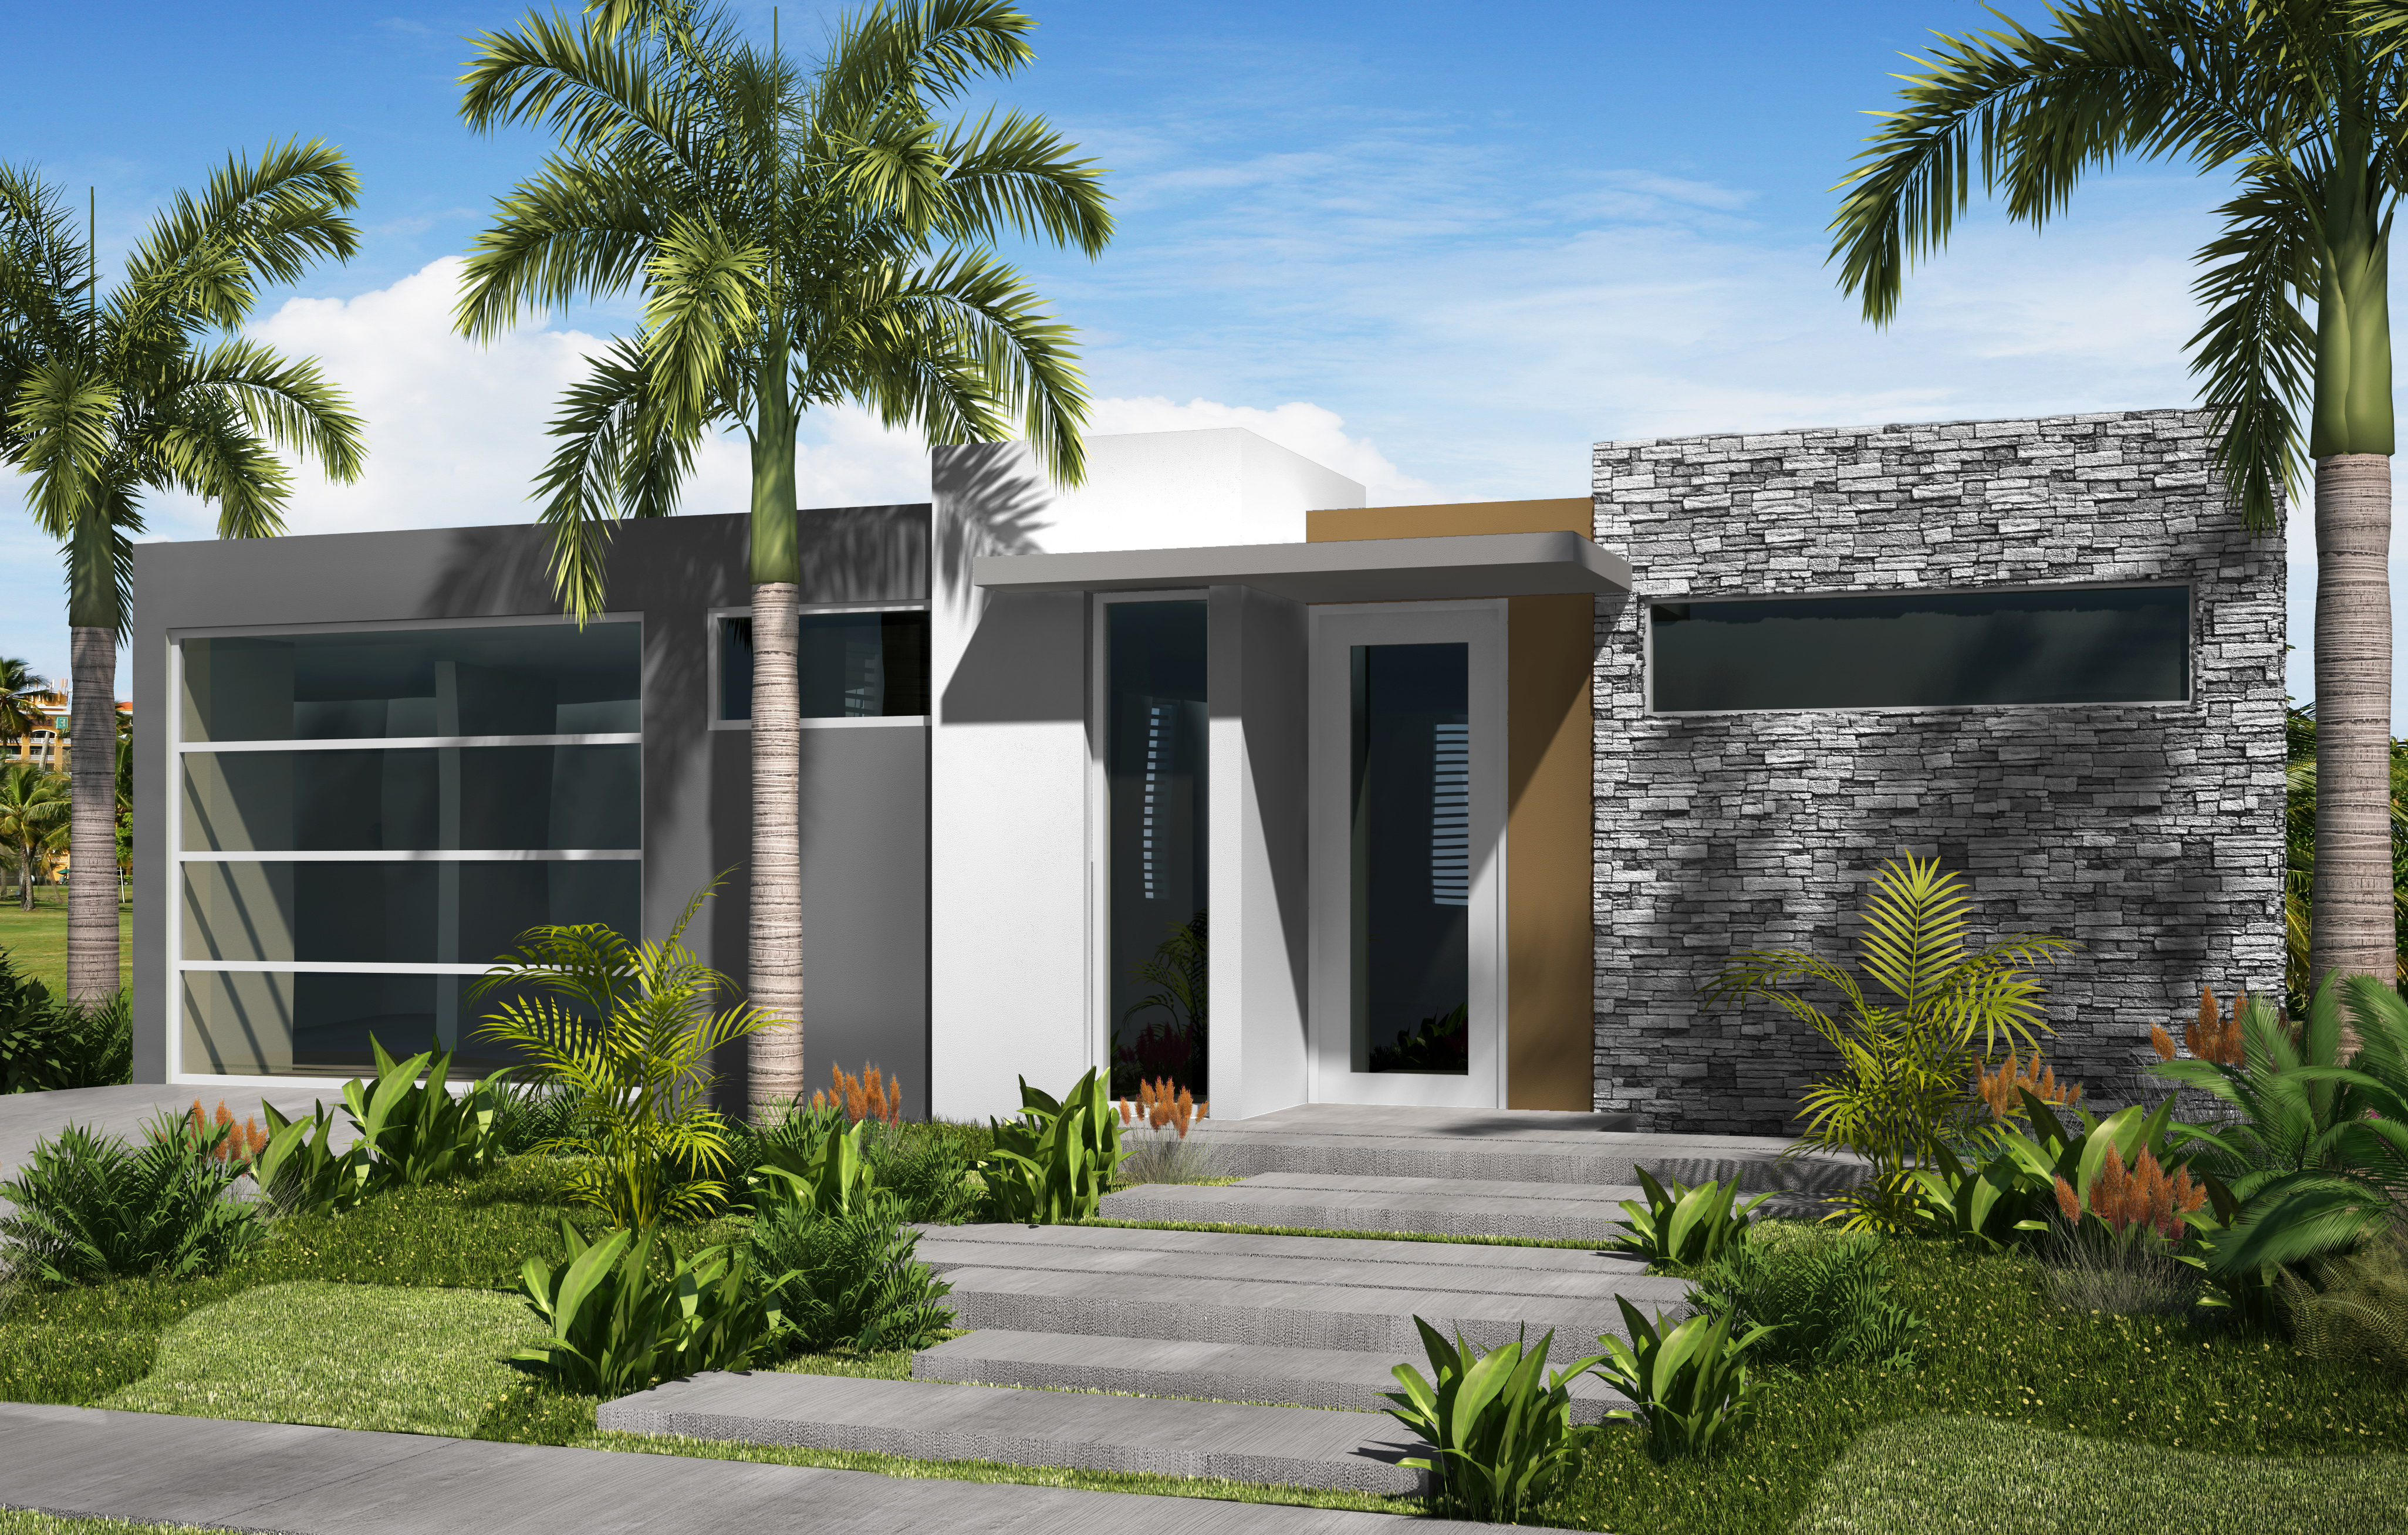 Casas modelos puerto rico pictures to pin on pinterest for Modelos de casas modernas